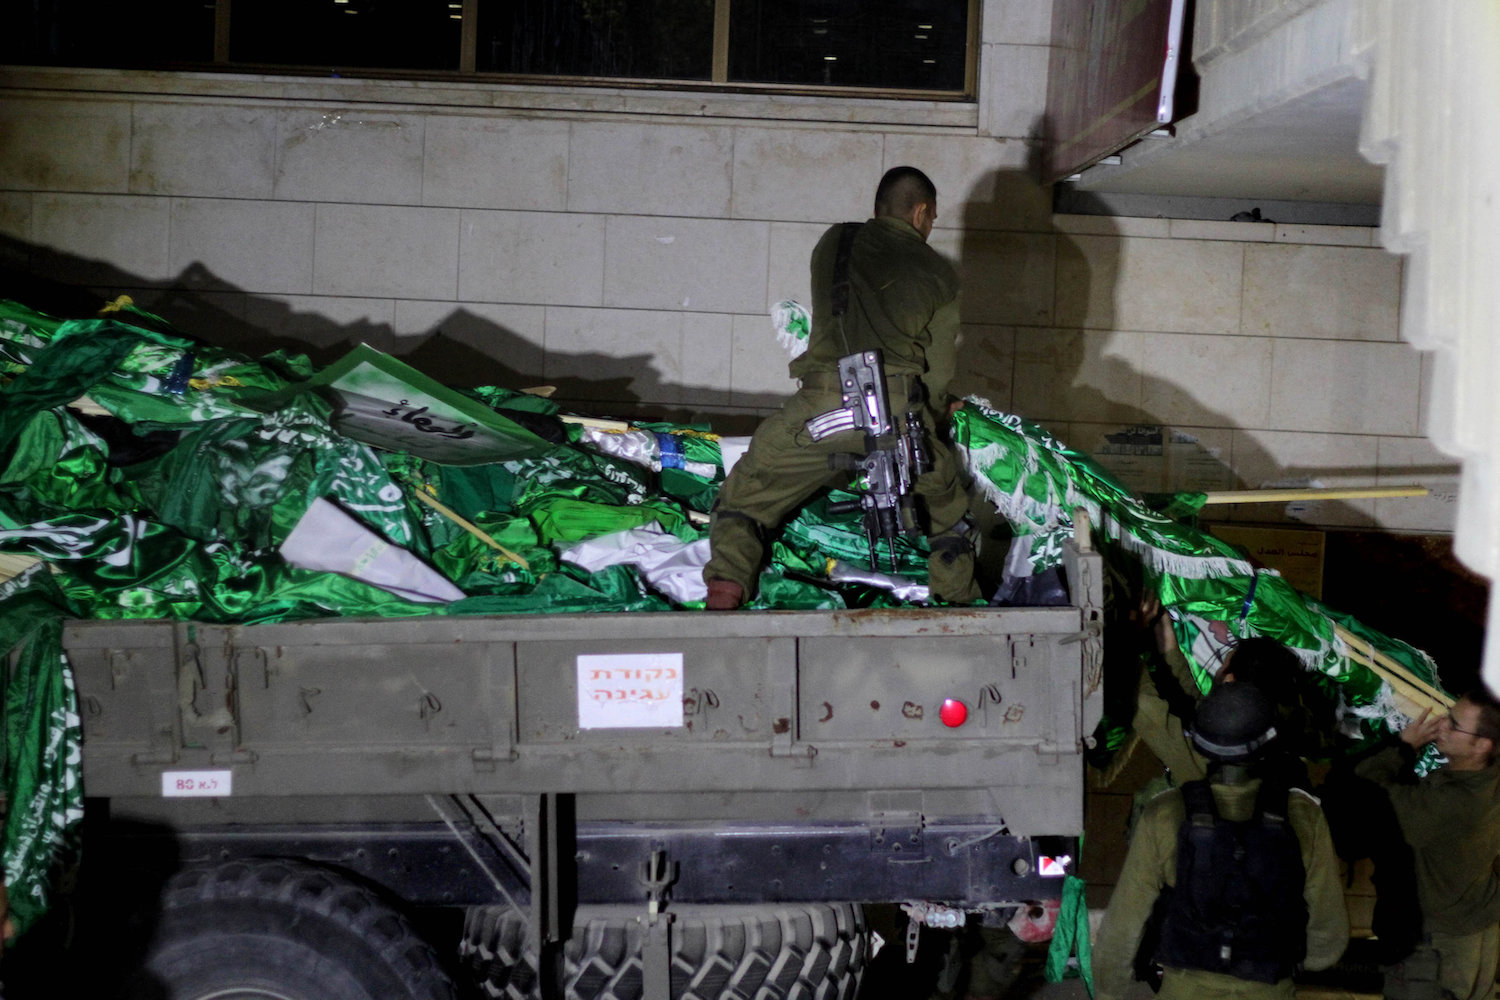 Israeli soldiers seen confiscating Hamas flags during a night raid on Birzeit Univeristy, West Bank, June 19, 2014. (Issam Rimawi/Flash 90)